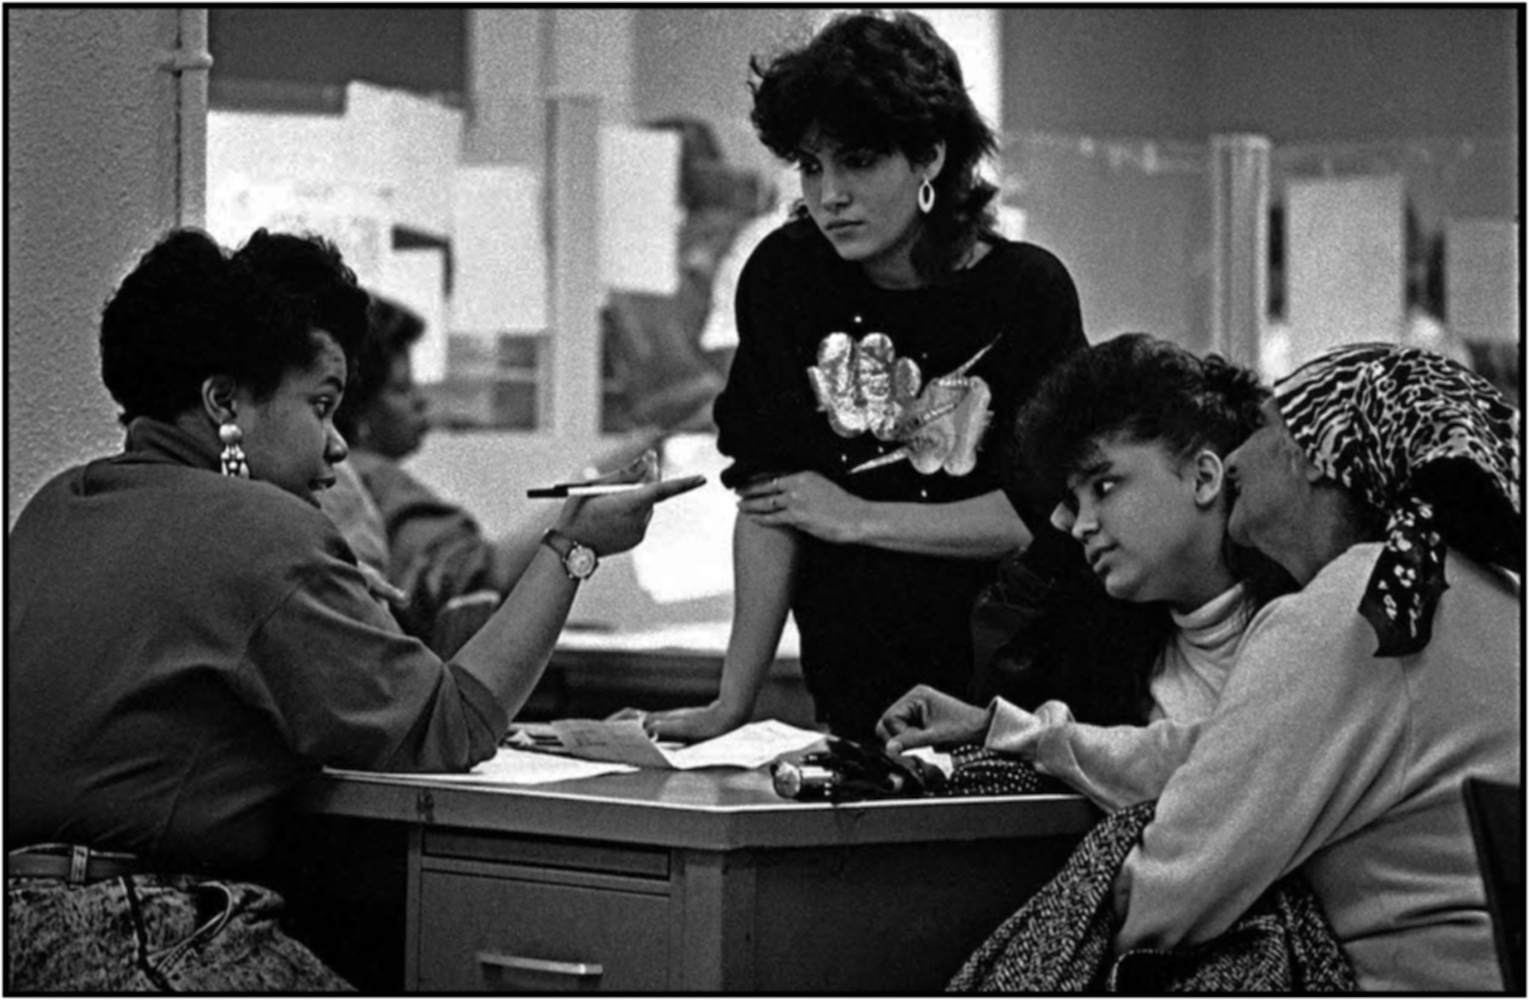 Eligibility specialist Kenyatta Jones (left) works with family at a Queens income maintenance center. 1988.